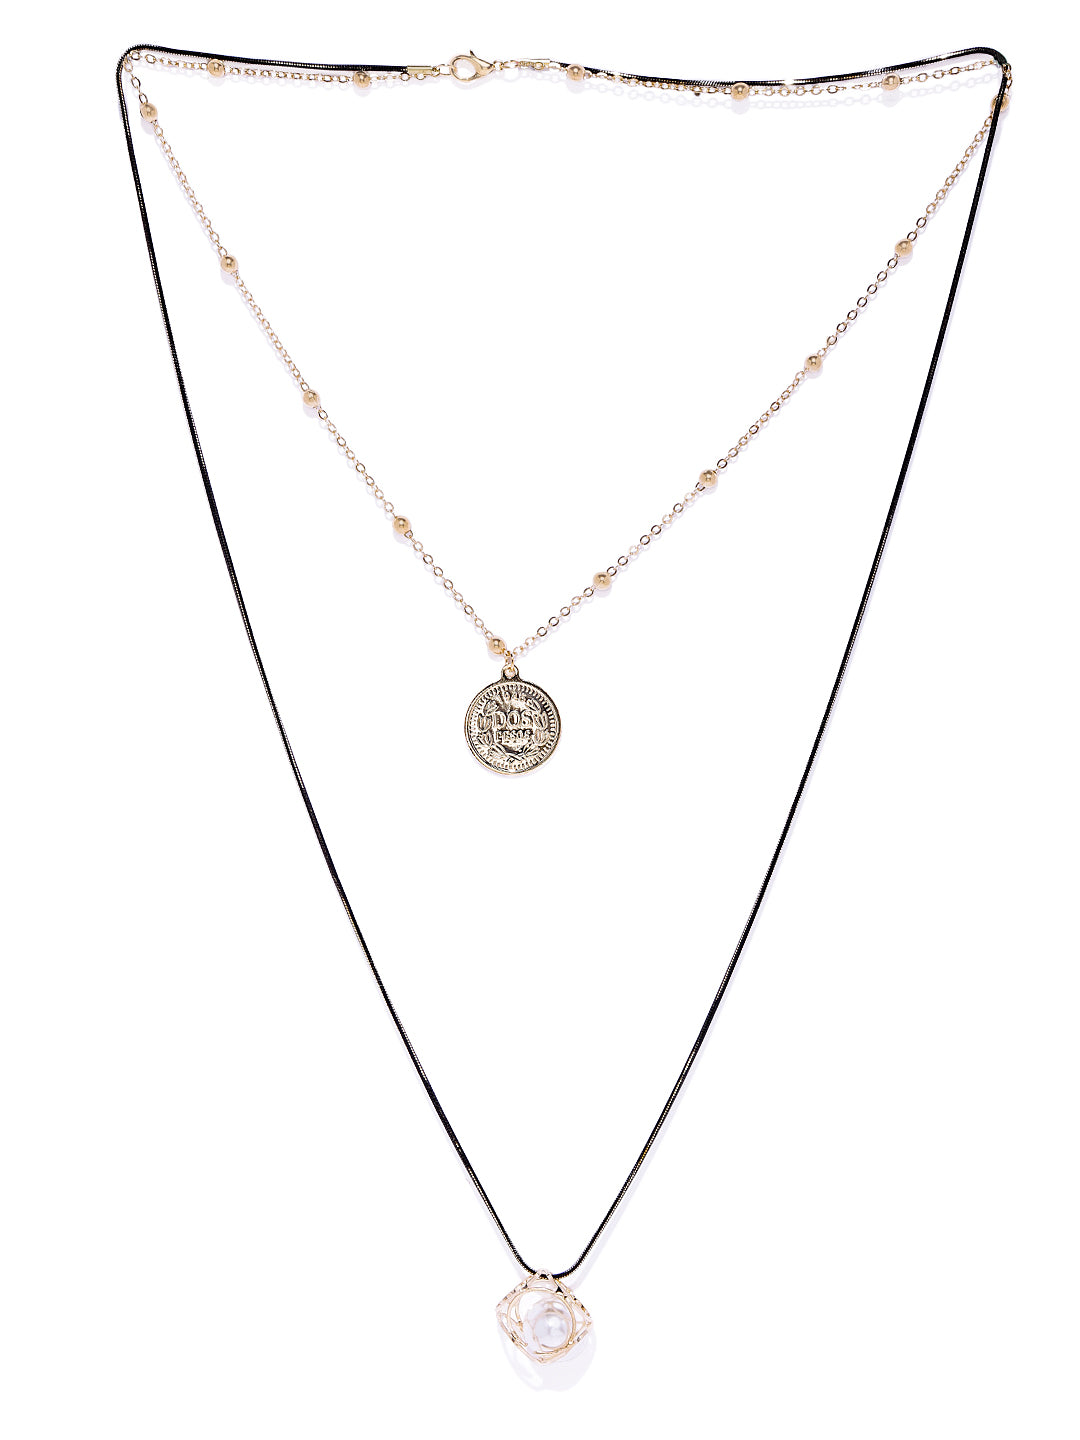 Roman Coin and Pearl Layered Necklace